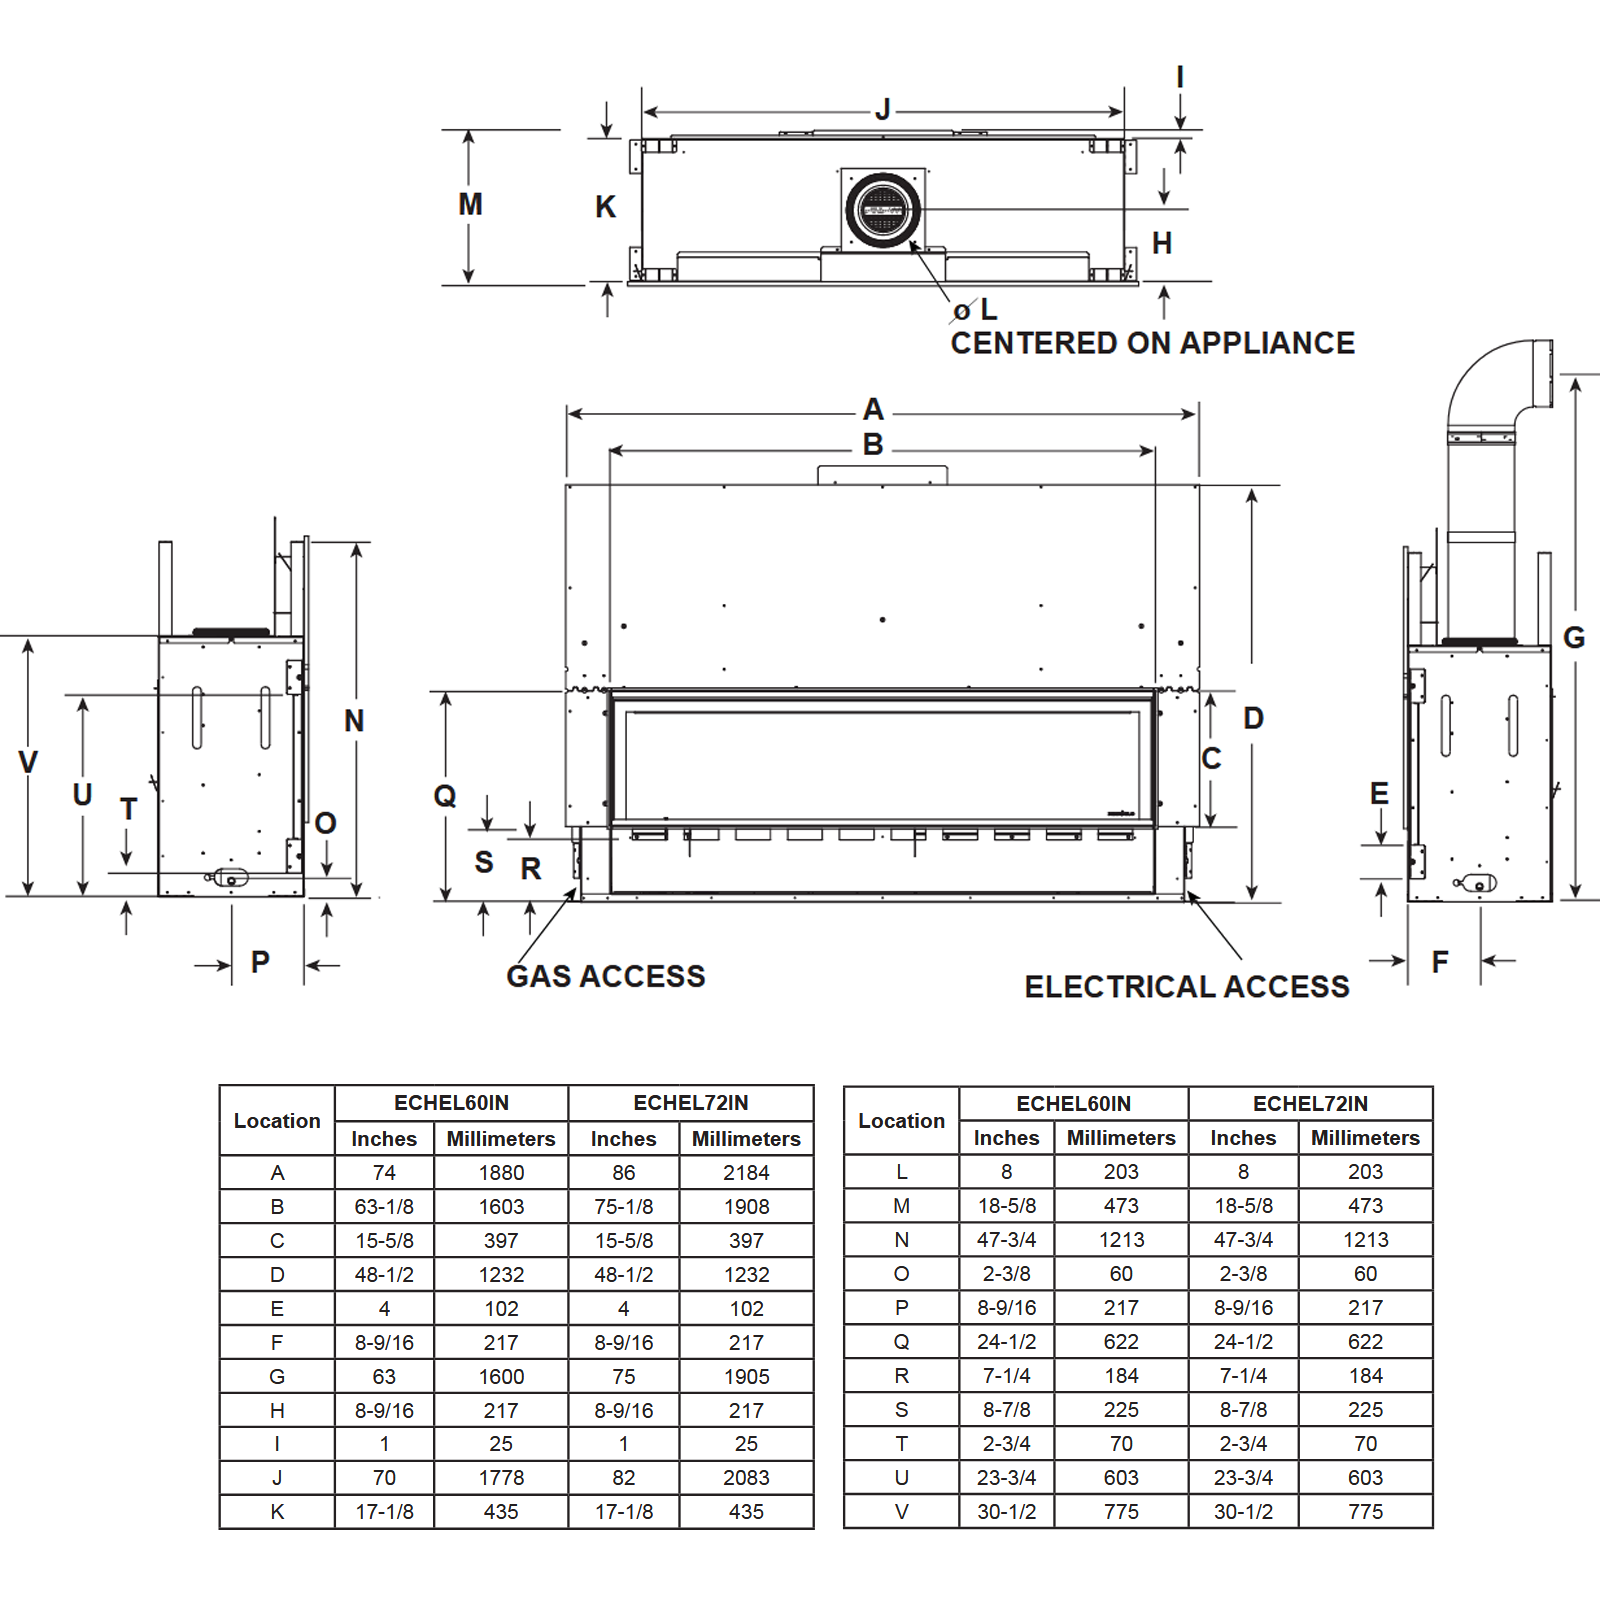 ECHEL72 Technical Drawing 1